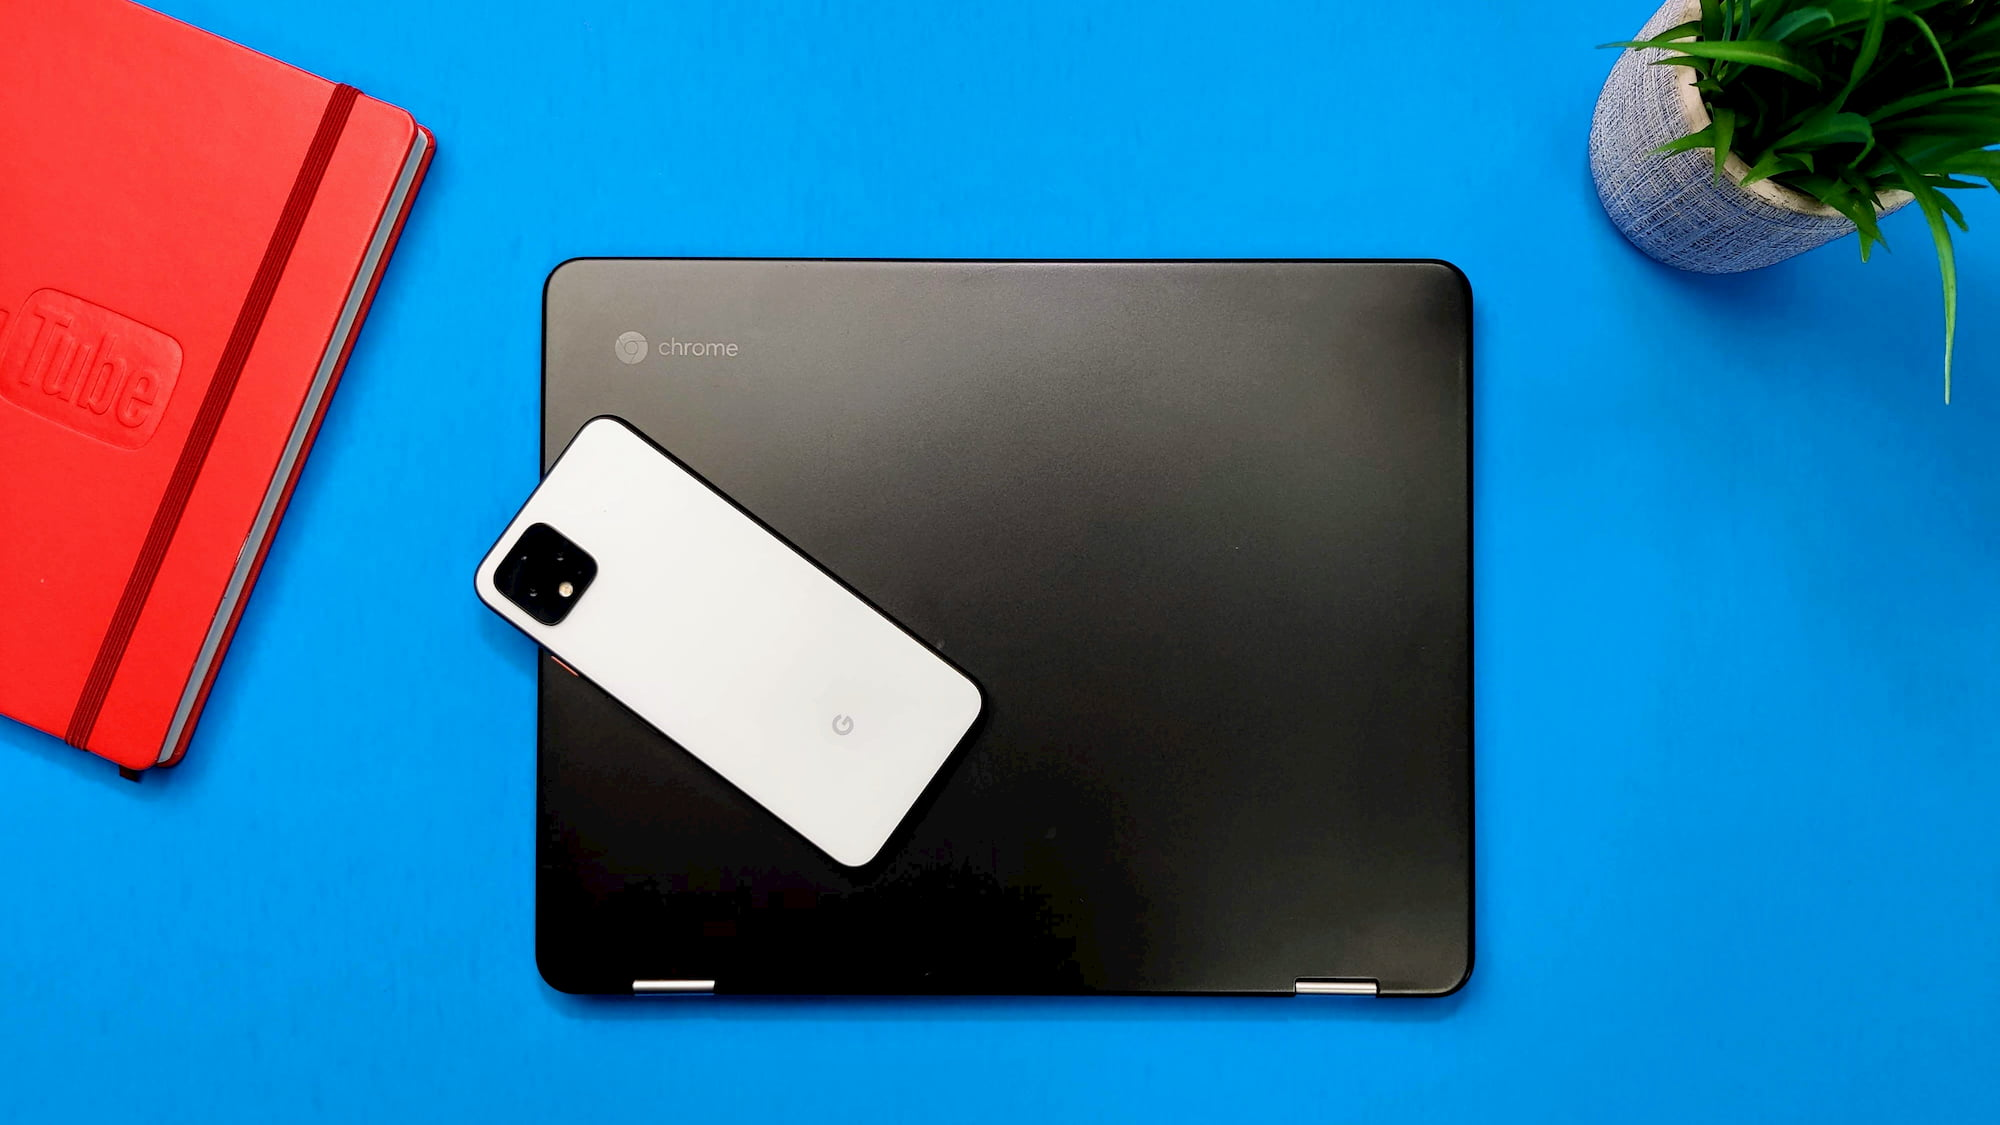 Snapdragon Chromebook 'Lazor' shows Pixel 4a-like speeds in Geekbench